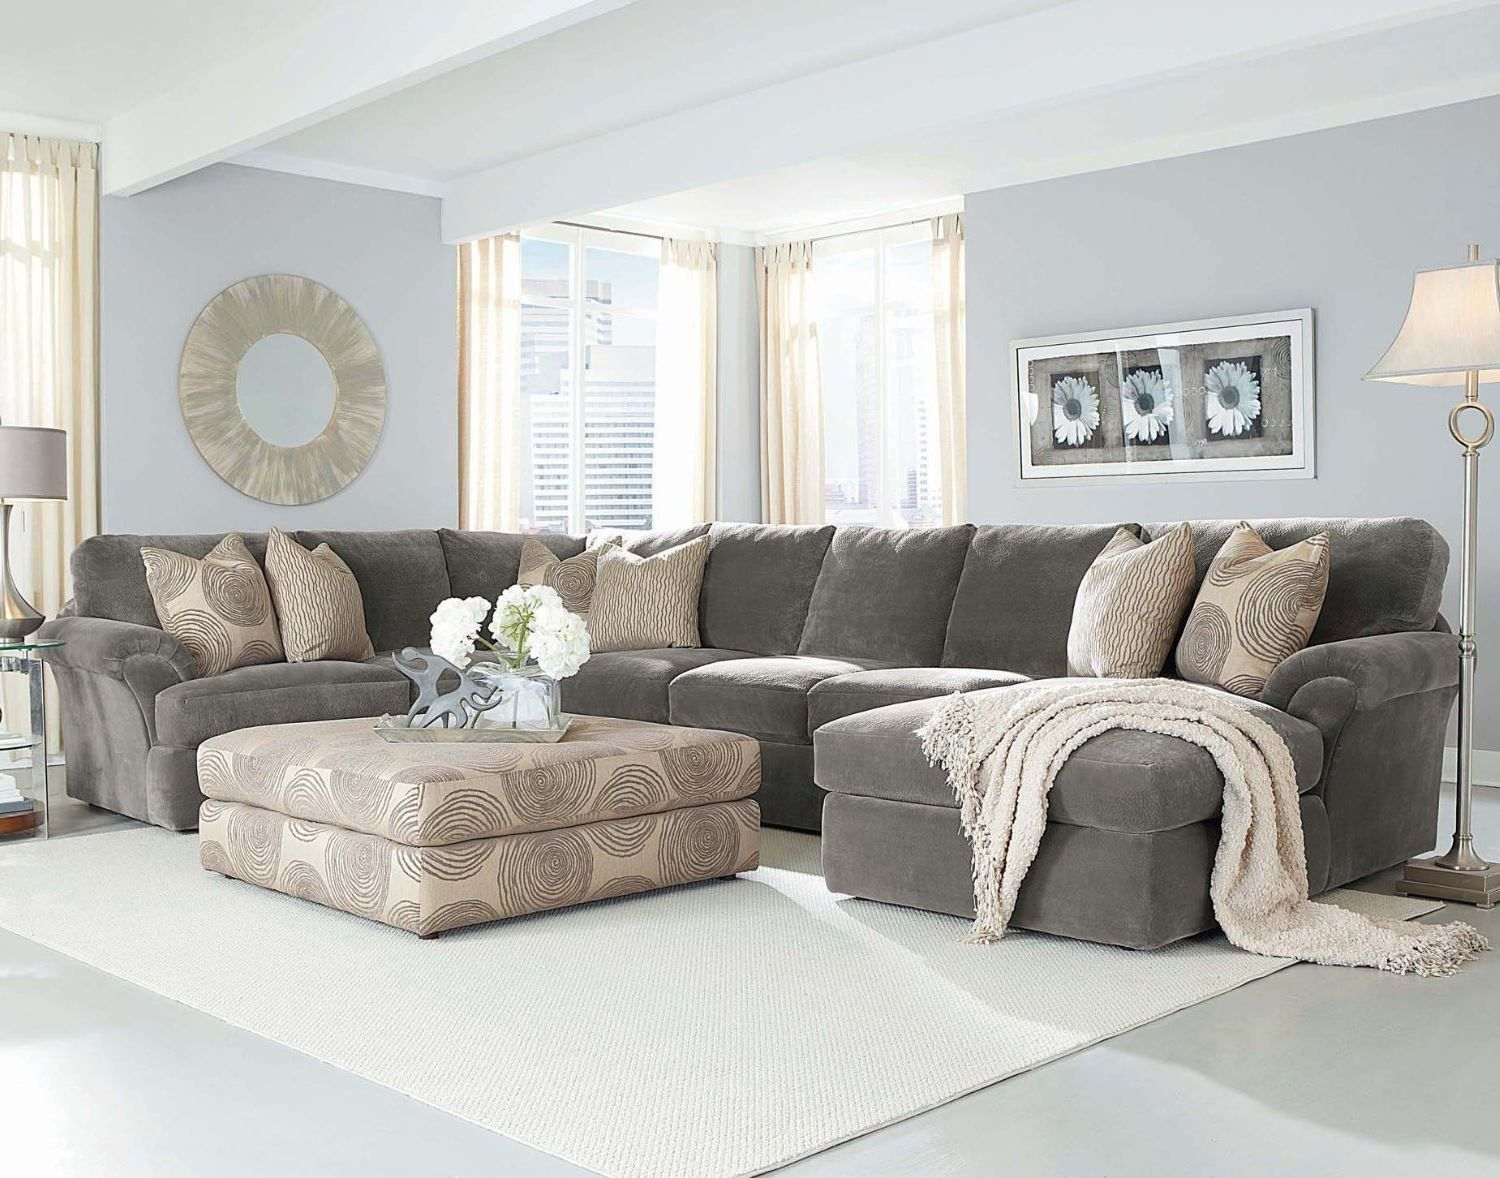 Living Room Ideas Light Grey Sofa How To Clean My Fabric Chelsea Bradley Large Sectional In Home